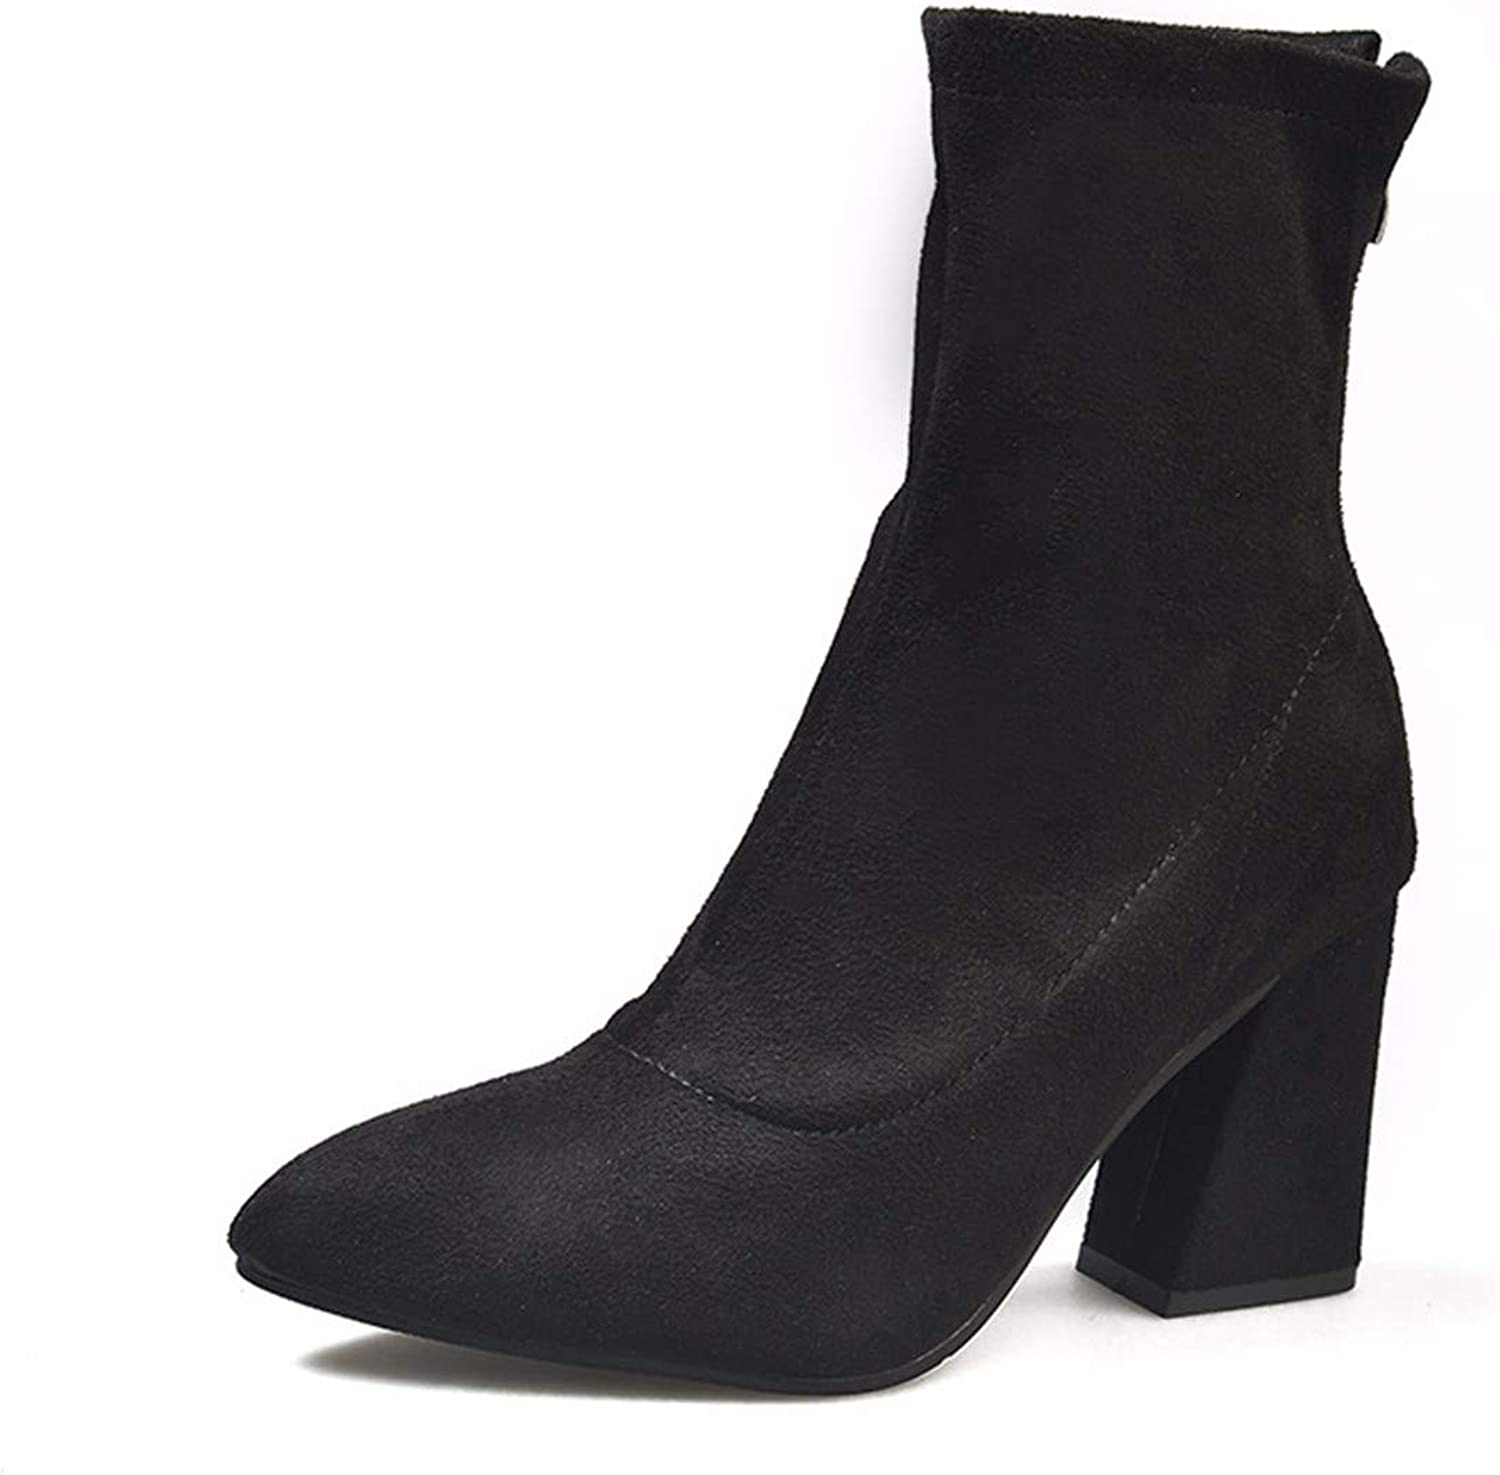 QPGGP-boots Pointed Martin Boots, Autumn and Winter, European and American Wind, Pointed Women, Suede Short Boots, Black.